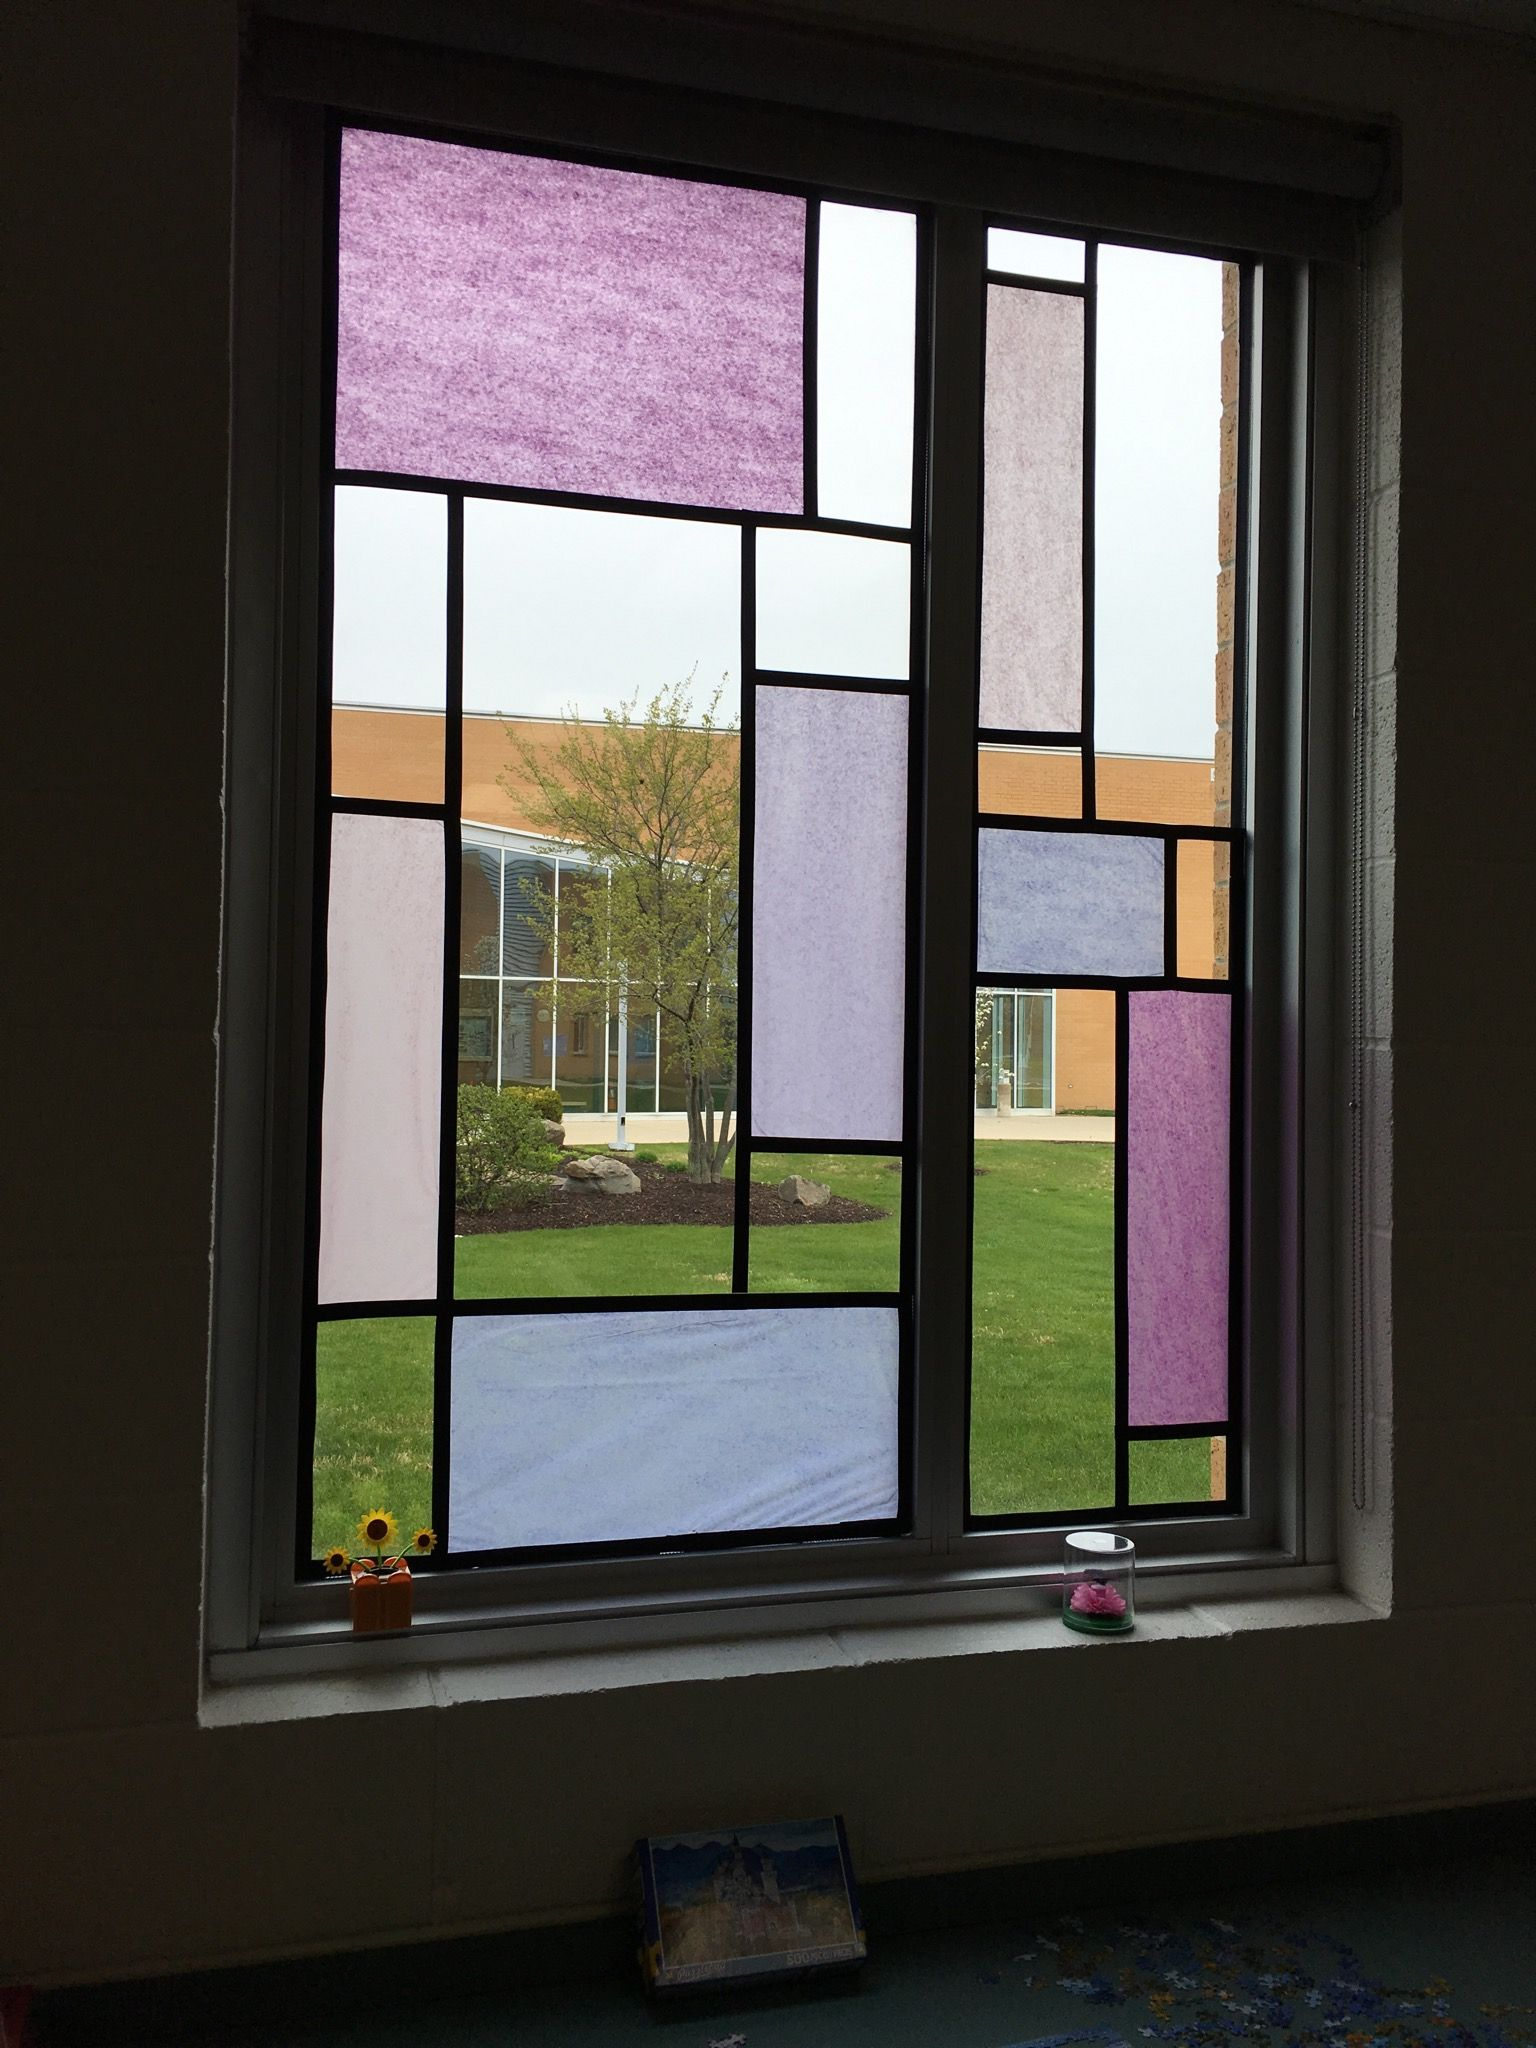 Faux Stained Glass Using Tissue Paper And Electricians Tape